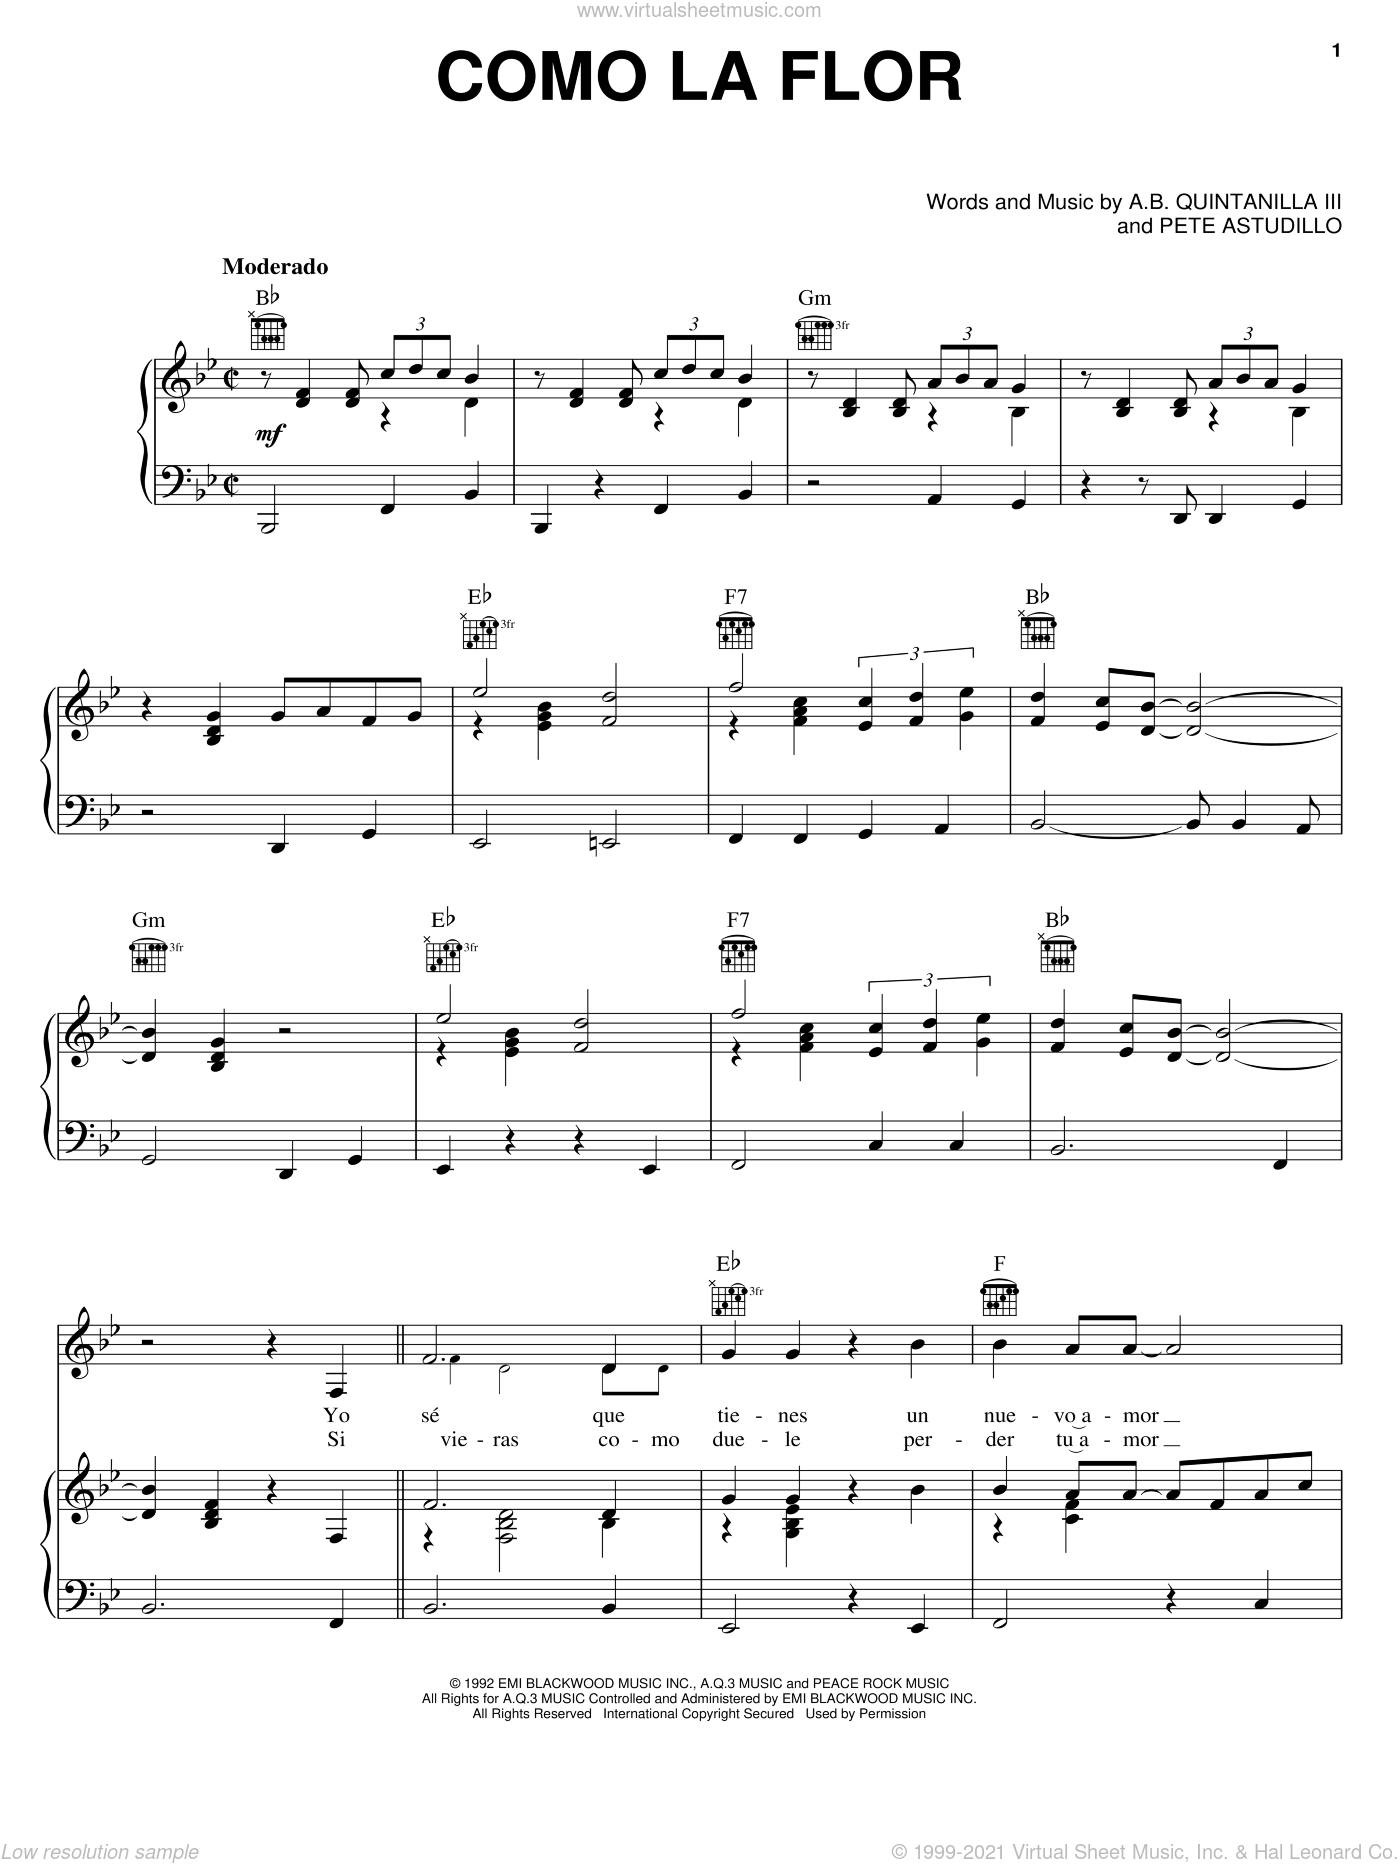 Como La Flor sheet music for voice, piano or guitar by Pete Astudillo